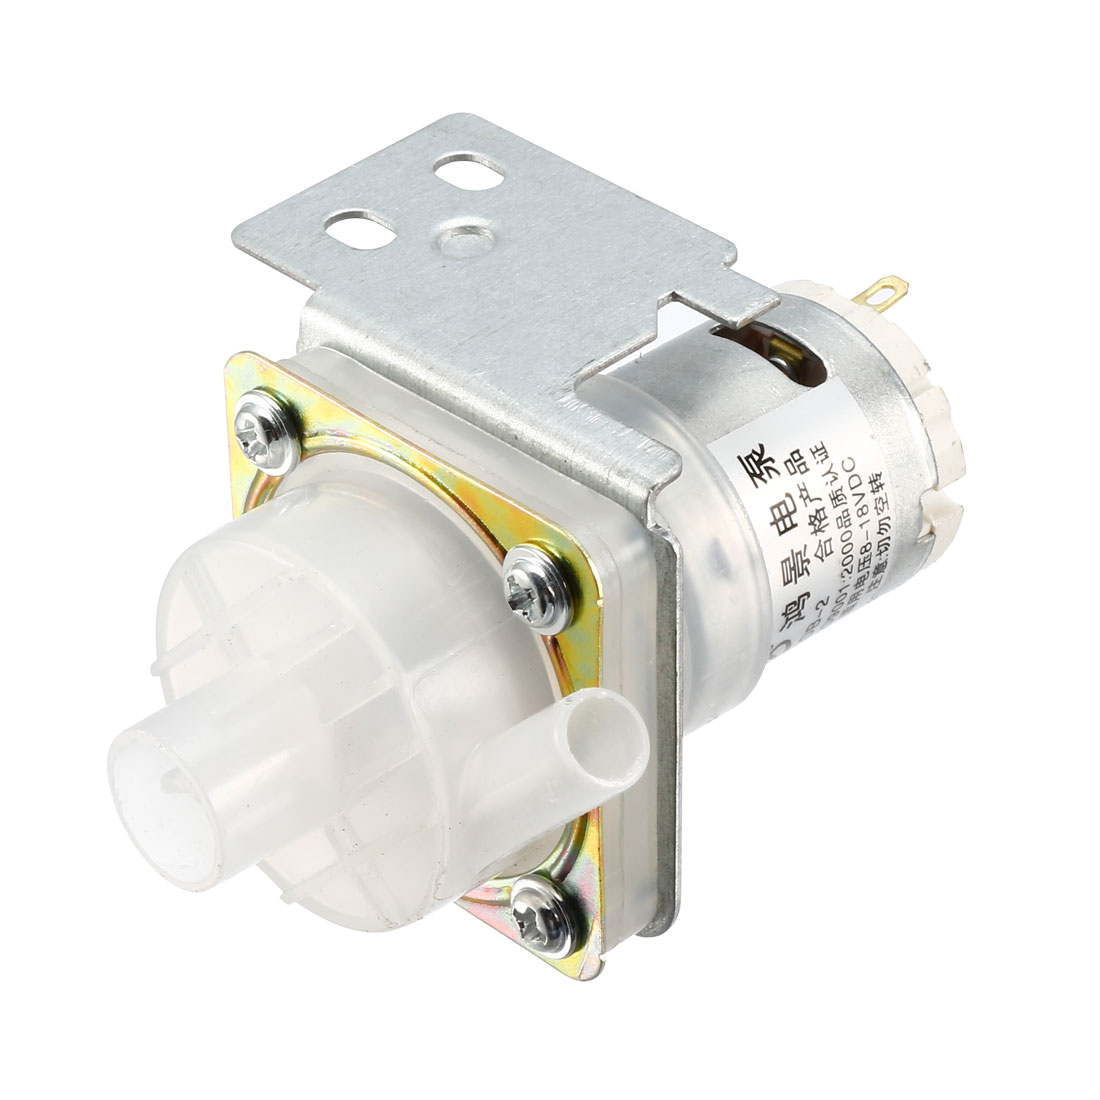 DB-2 DC 8-12V Right Outlet Water Pumping Electric Micro Mini Pump Motor